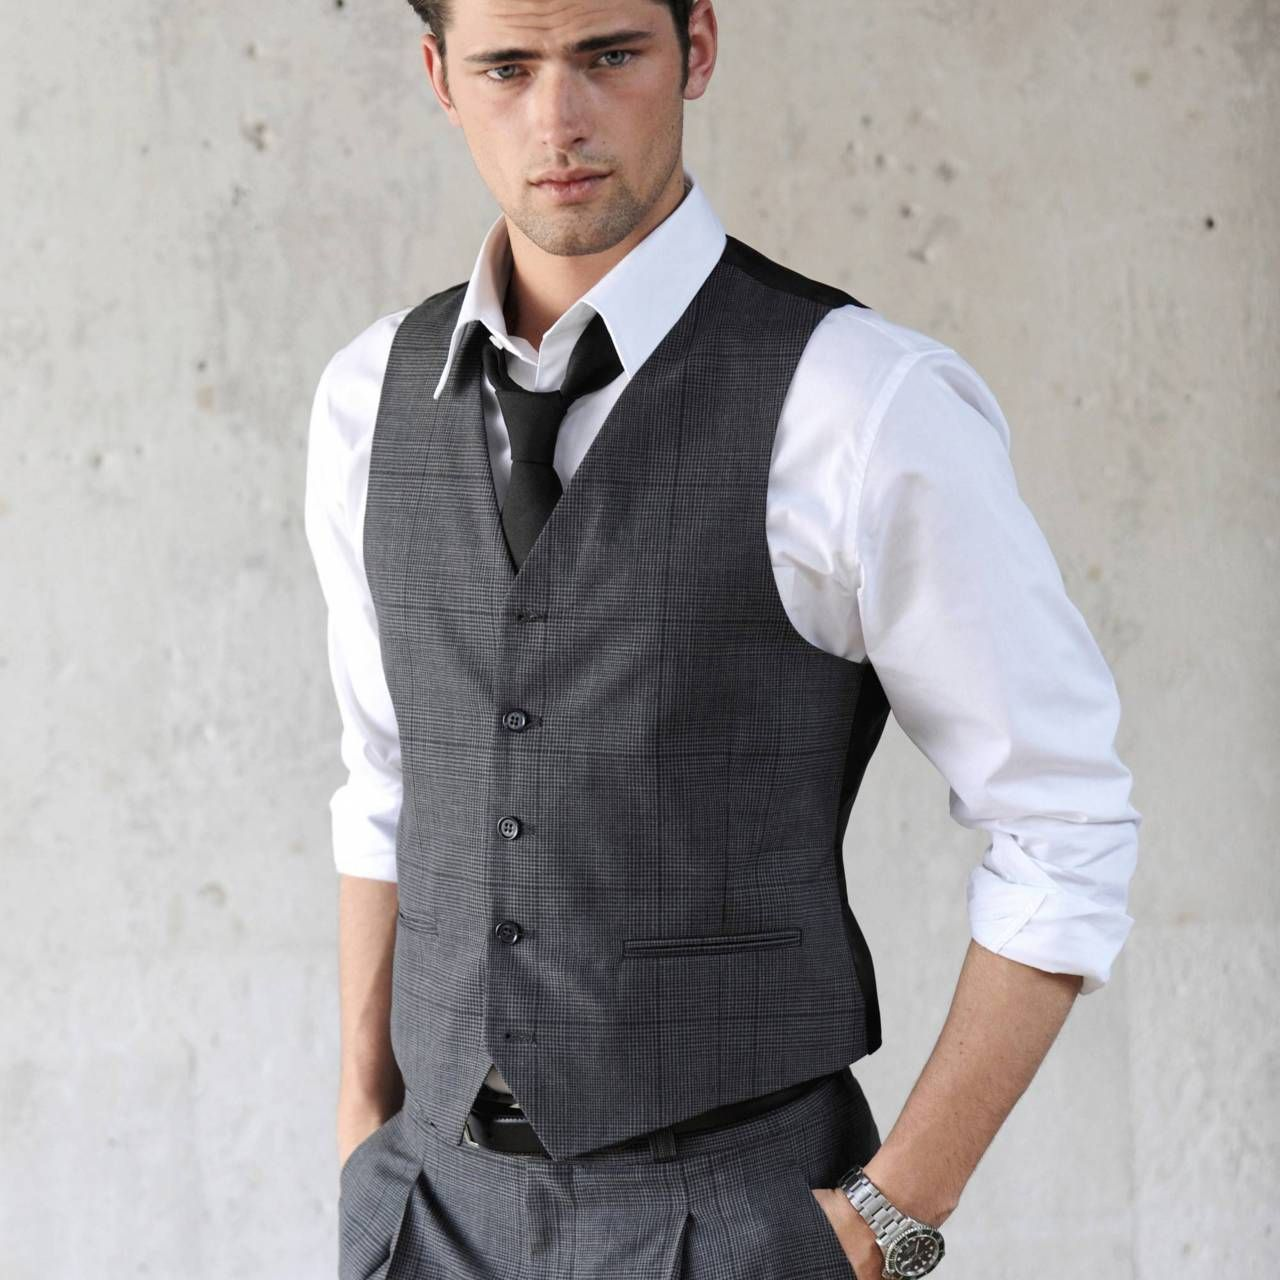 Men's Fashion: Charcoal Waistcoat / Vest, White Shirt, Charcoal ...